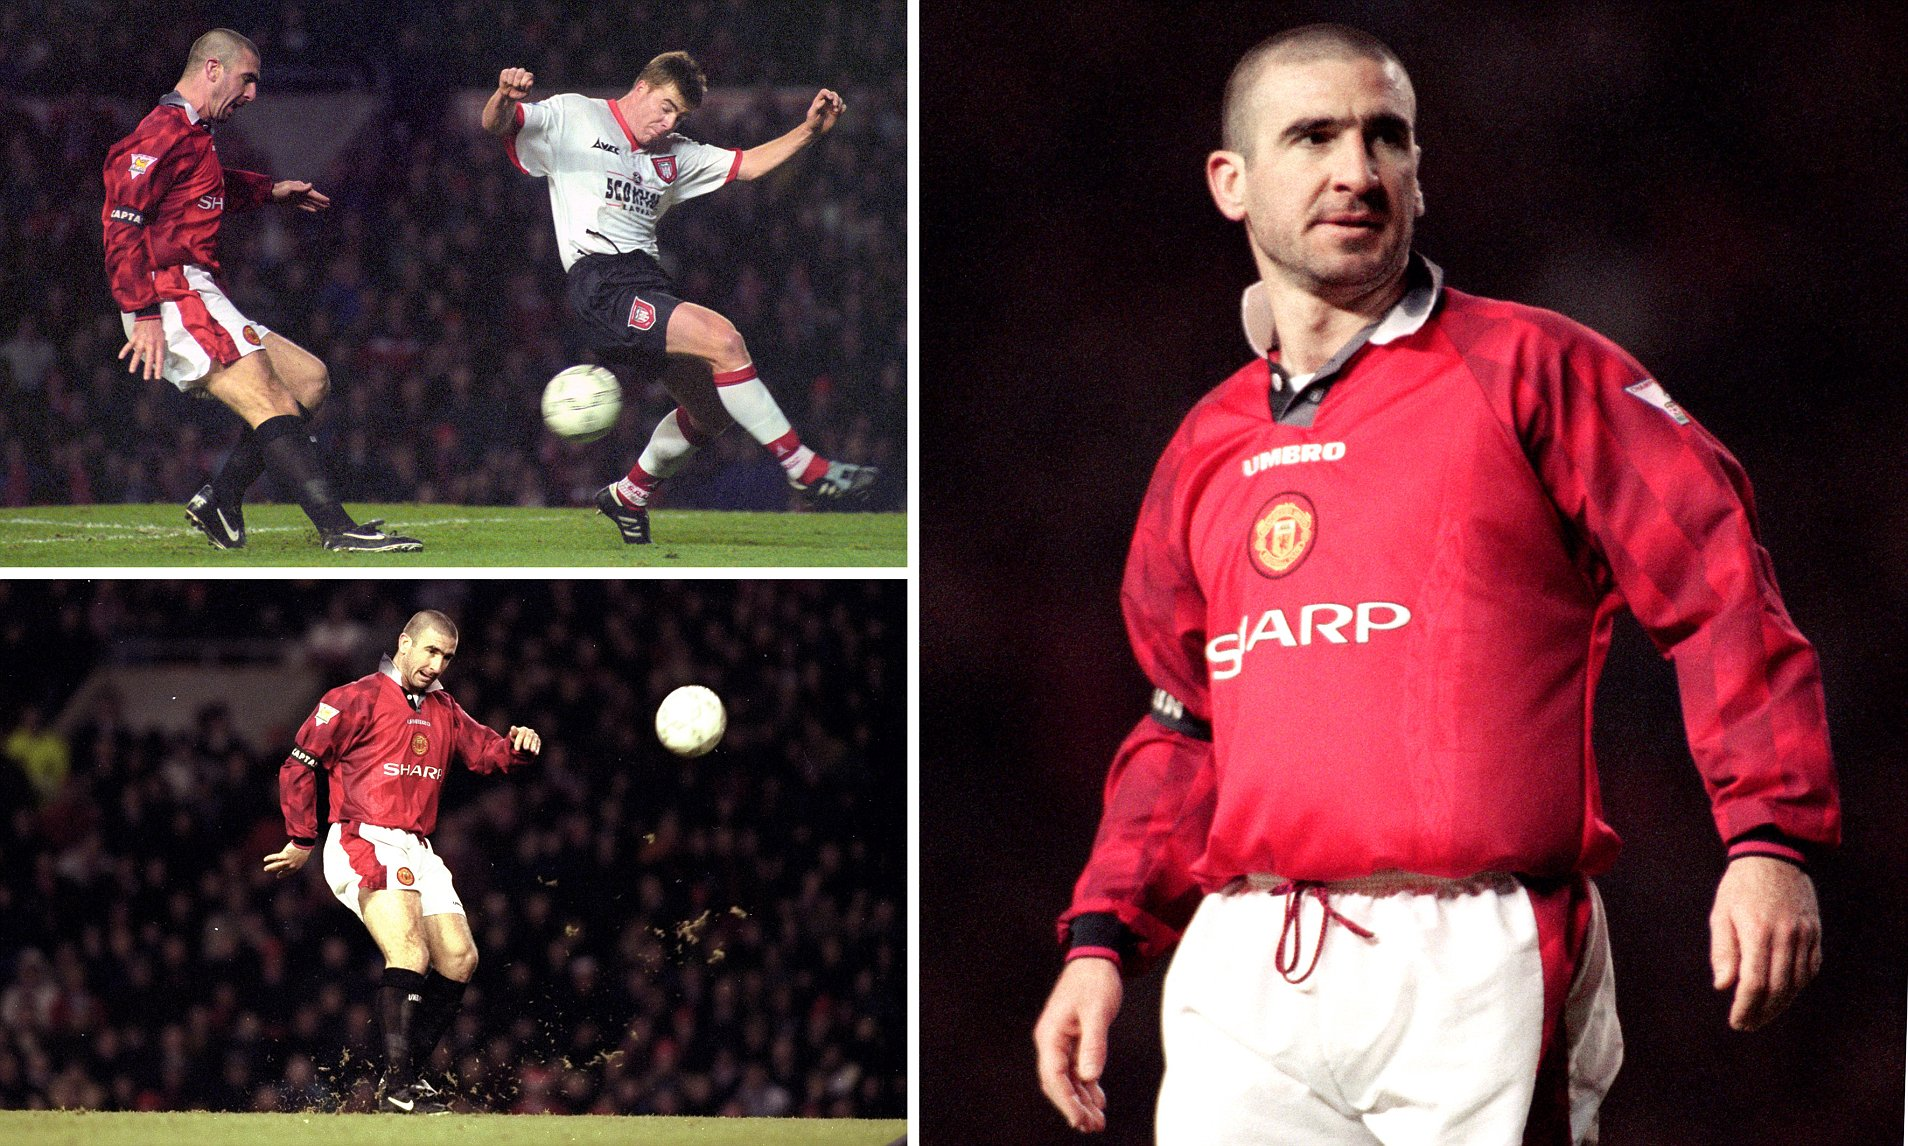 Hollywood is full of famous siblings — the hemsworths, the gyllenhaals, and the baldwins all come to mind — but not every celebrity sibling wears their genetics on their sleeve. Eric Cantona S Chip And Iconic Celebration For Manchester United Against Sunderland Was 20 Years Ago It Was A Moment Of Calmness That Helped Define The Star S Legacy Daily Mail Online